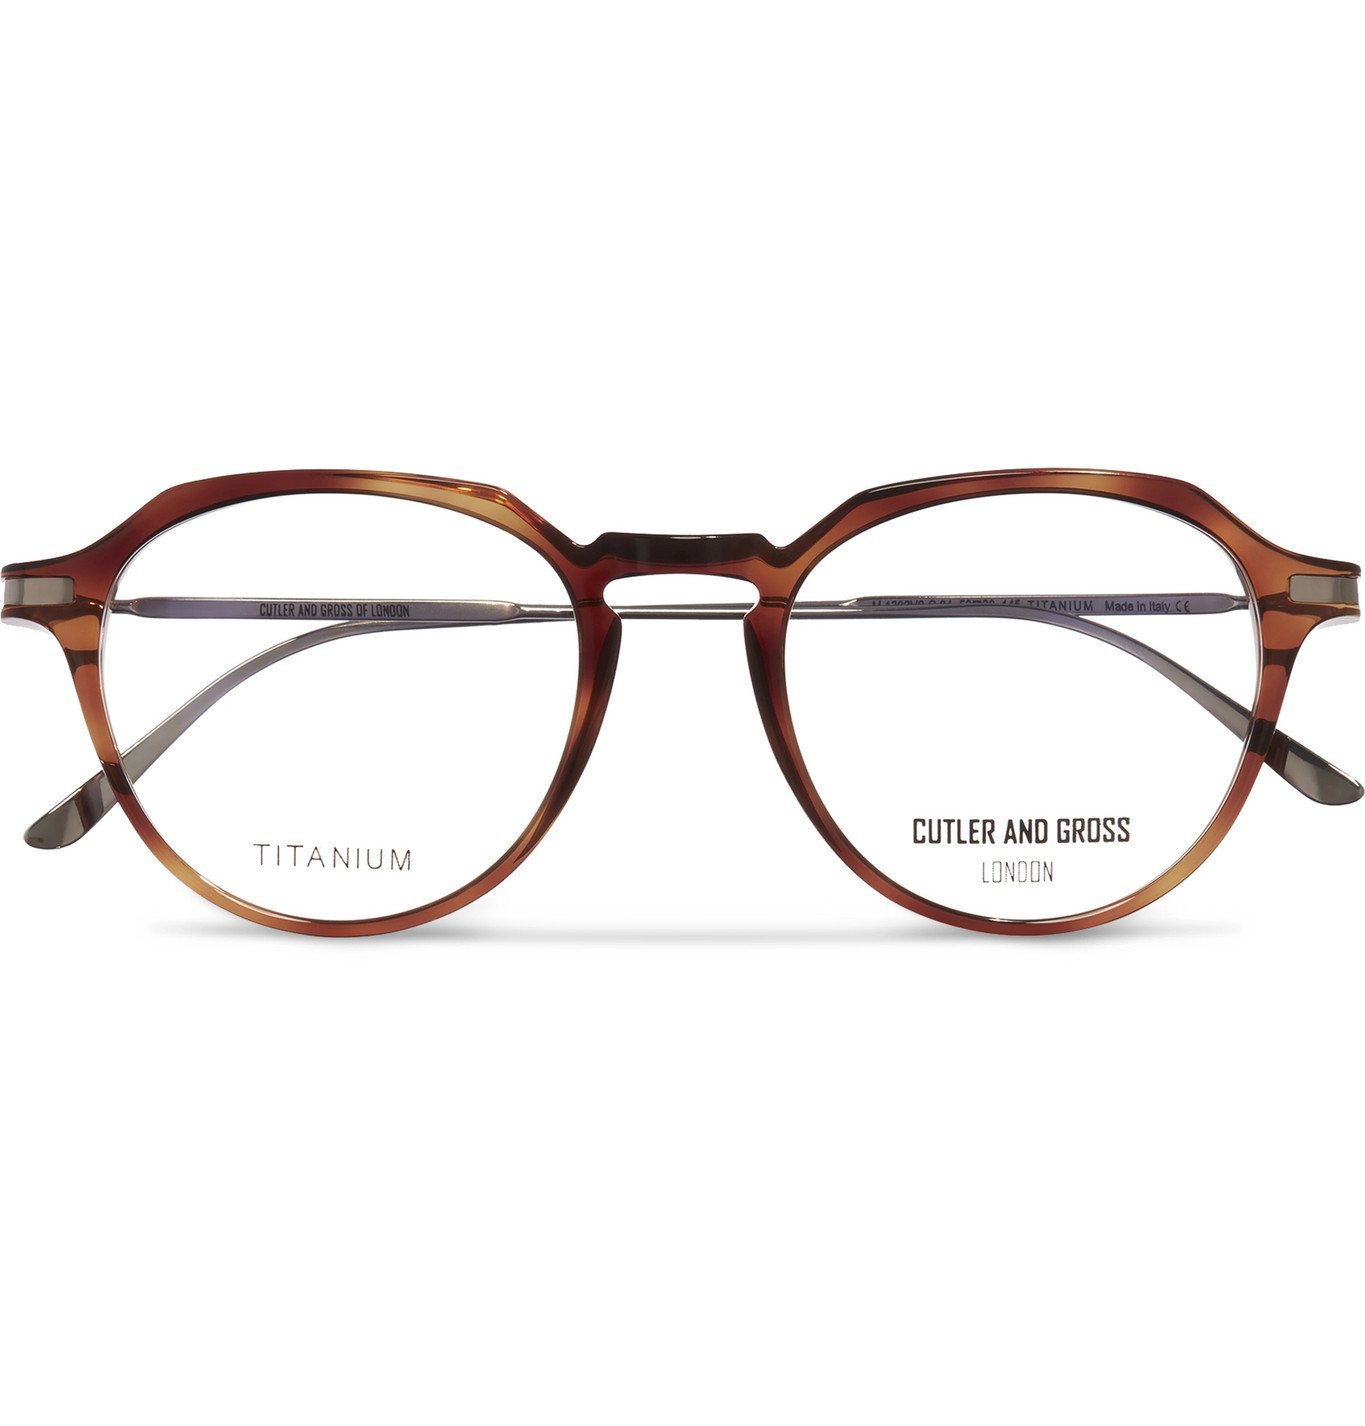 Photo: Cutler and Gross - Round-Frame Tortoiseshell Acetate and Titanium Optical Glasses - Tortoiseshell